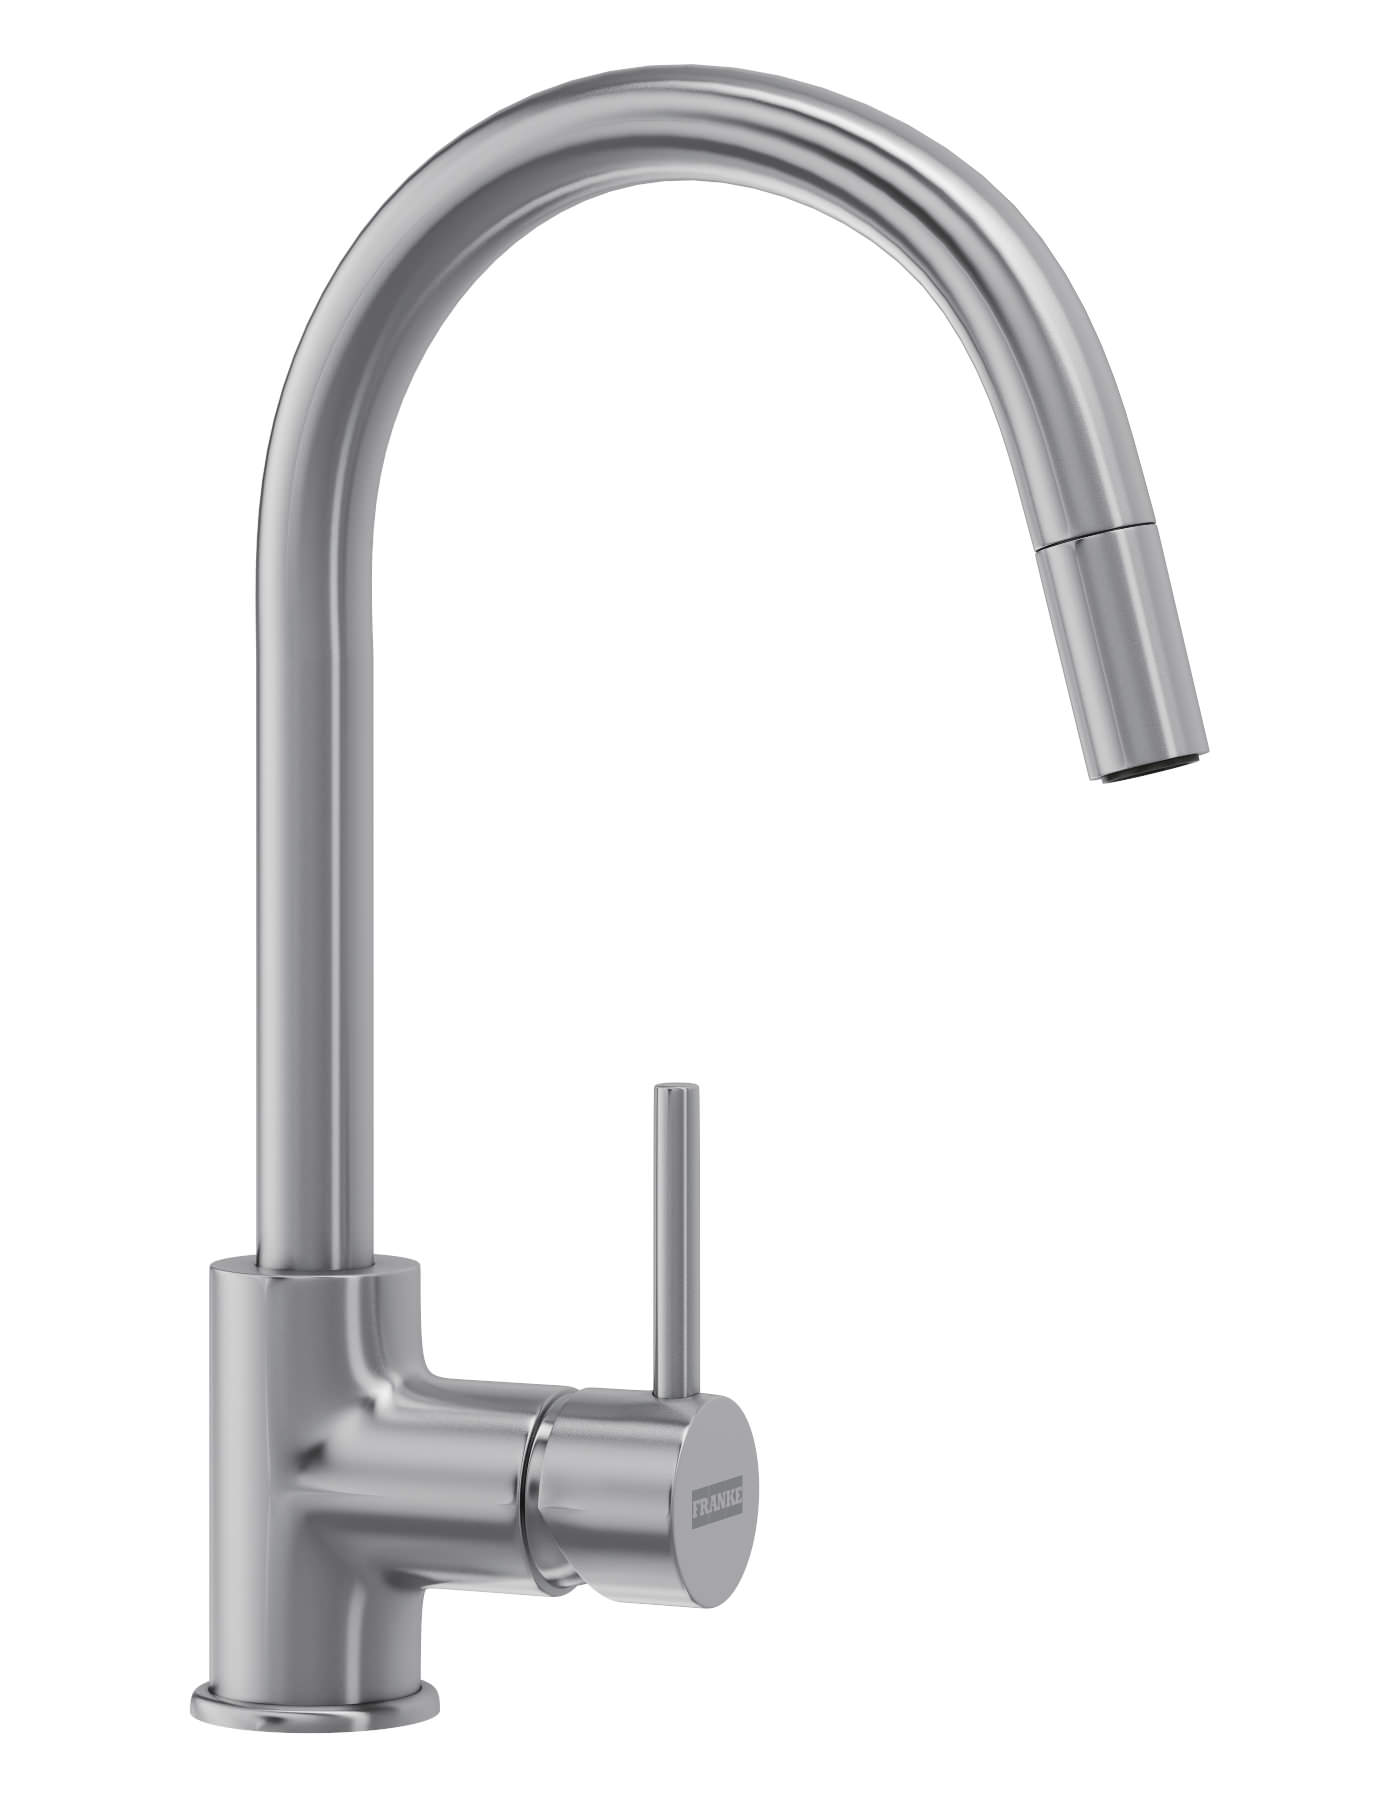 Franke Aria Pull-Out Nozzle SilkSteel PVD Kitchen Sink Mixer Tap